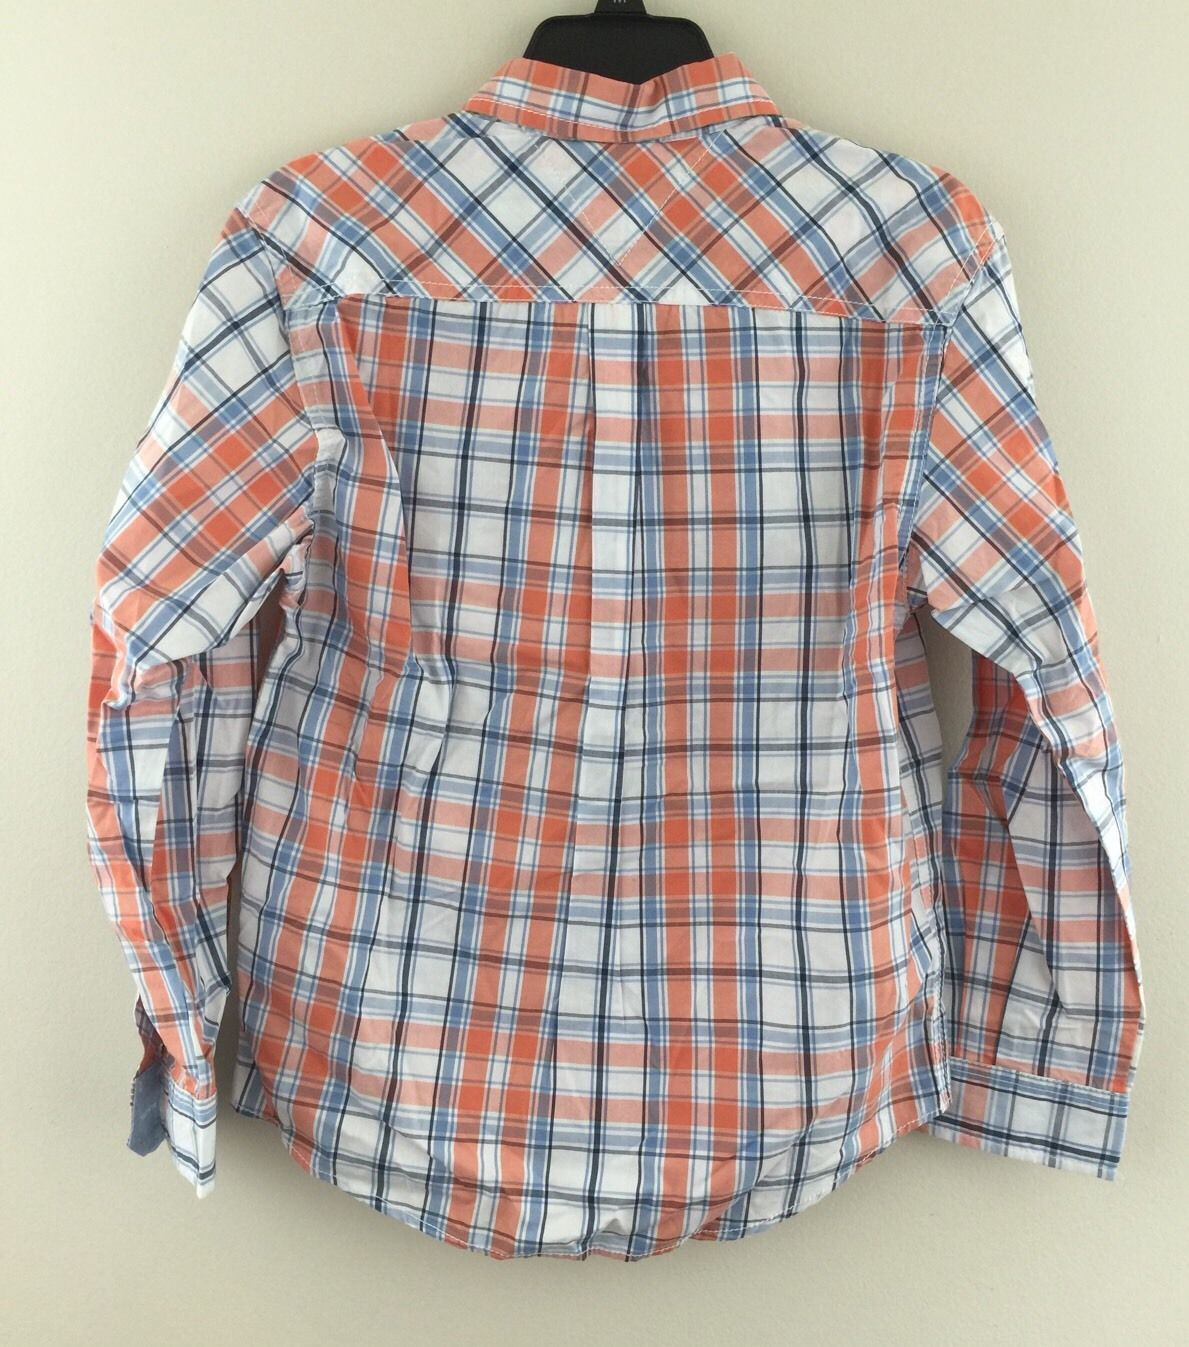 new tommy hilfiger boys dress shirt button up